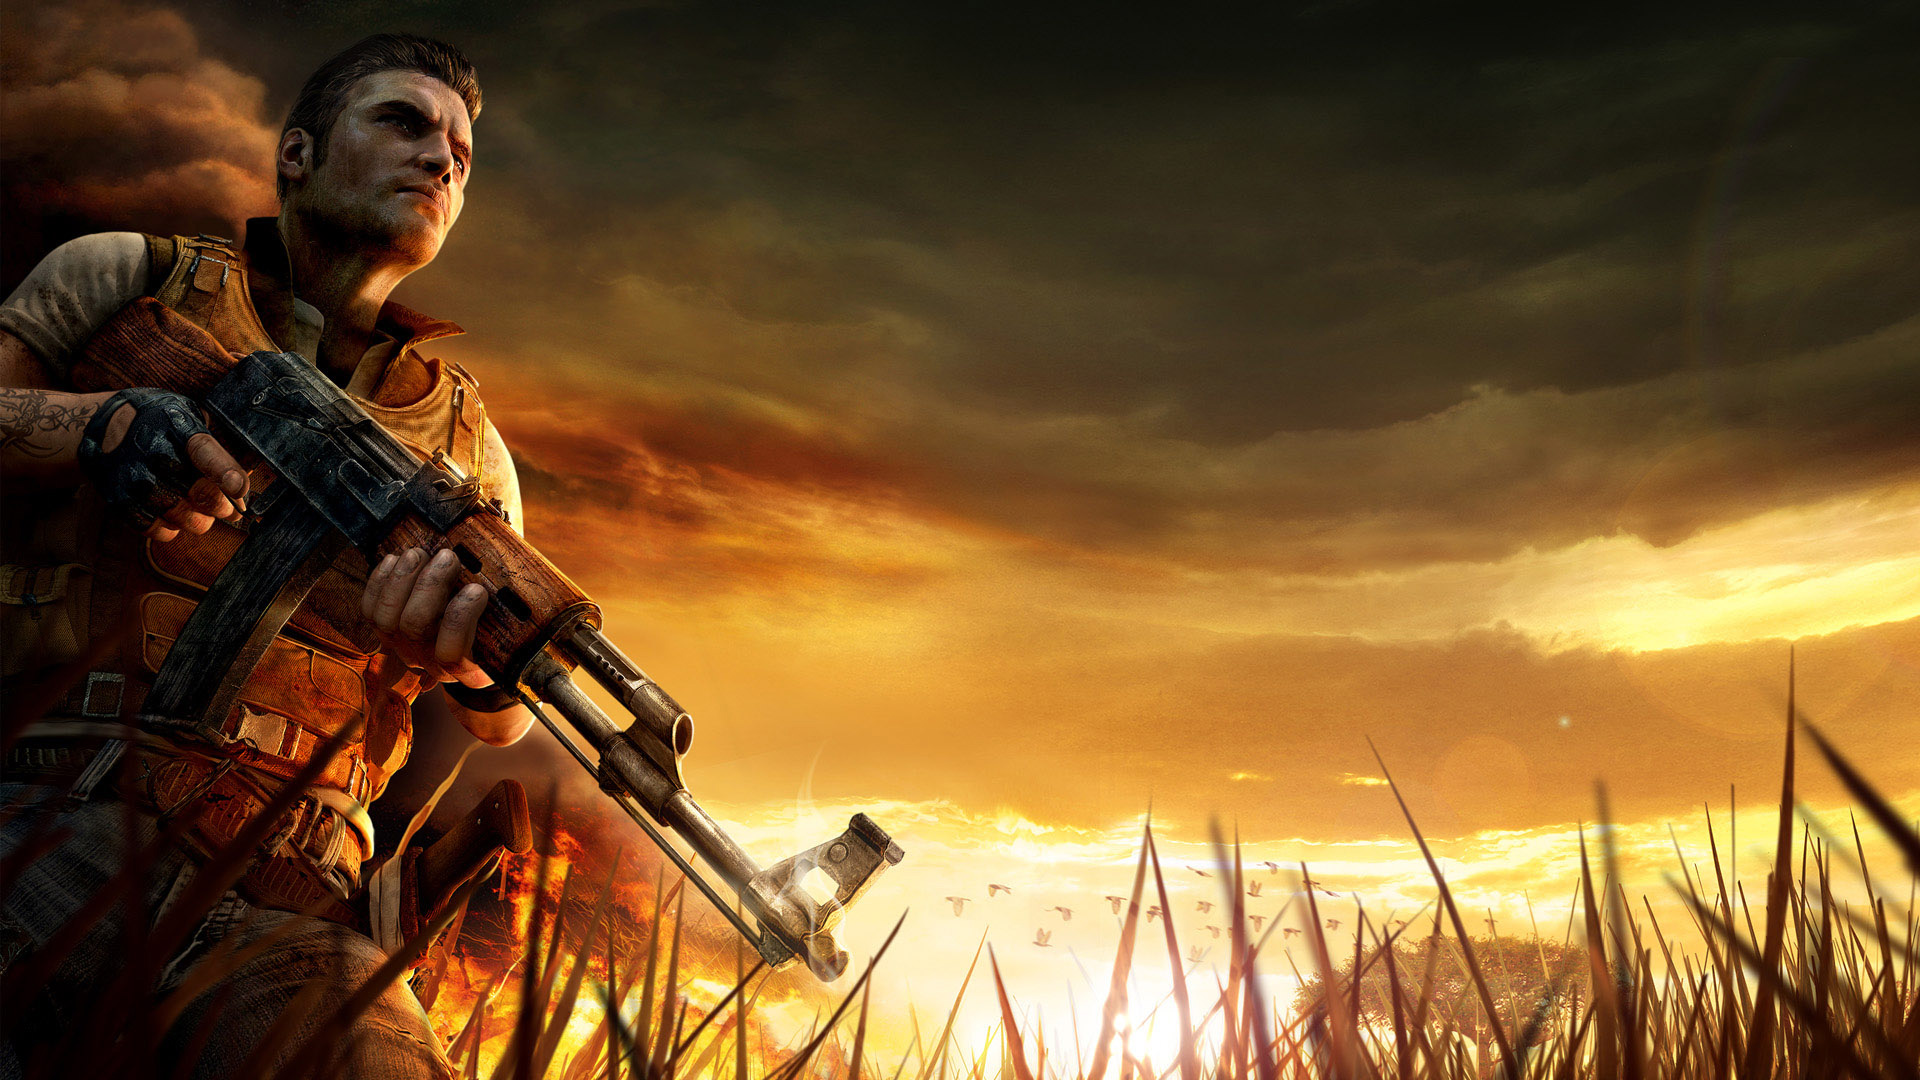 HD Video Game Wallpaper Game Wallpaper for both Mobile 1920x1080